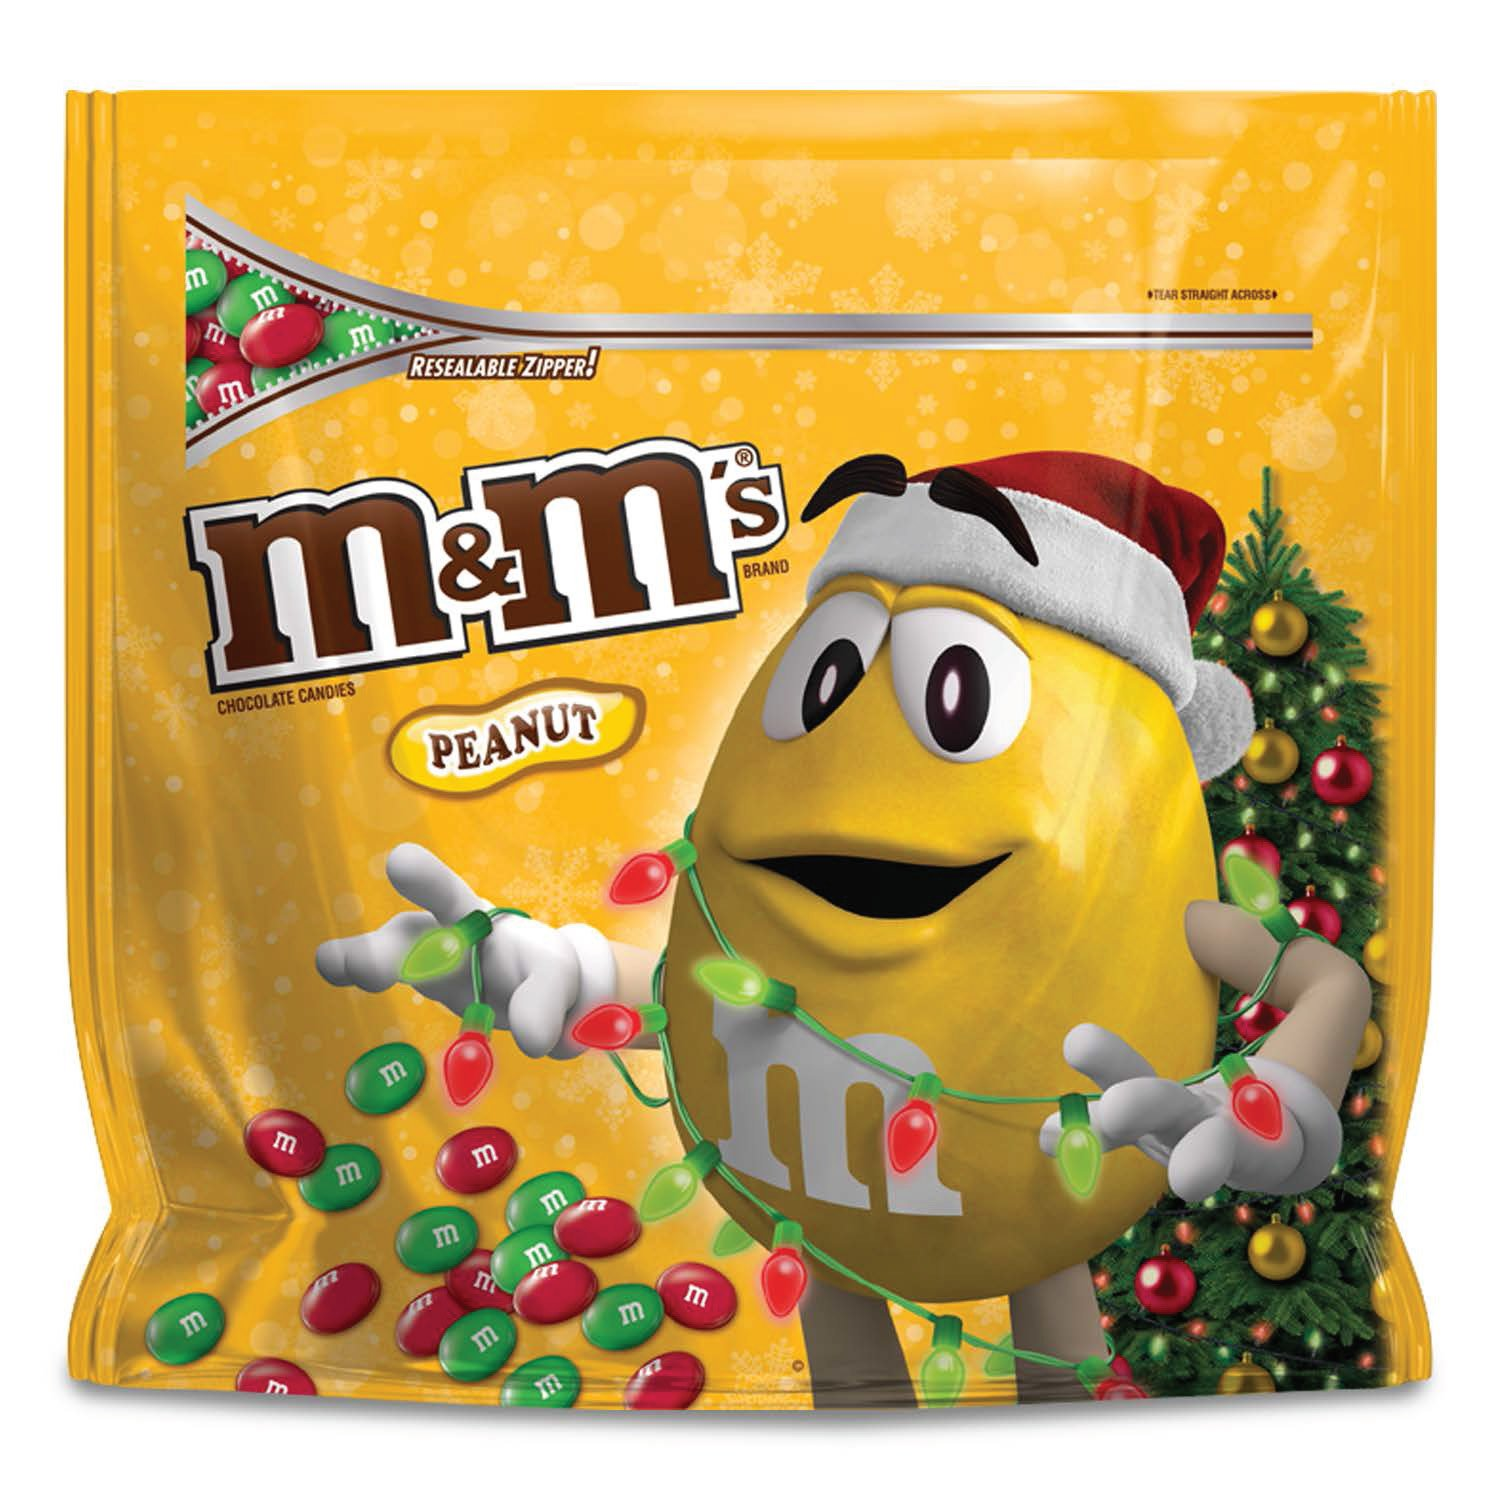 M&M'S Christmas Peanut Chocolate Candy Party Size 42-Ounce Bag